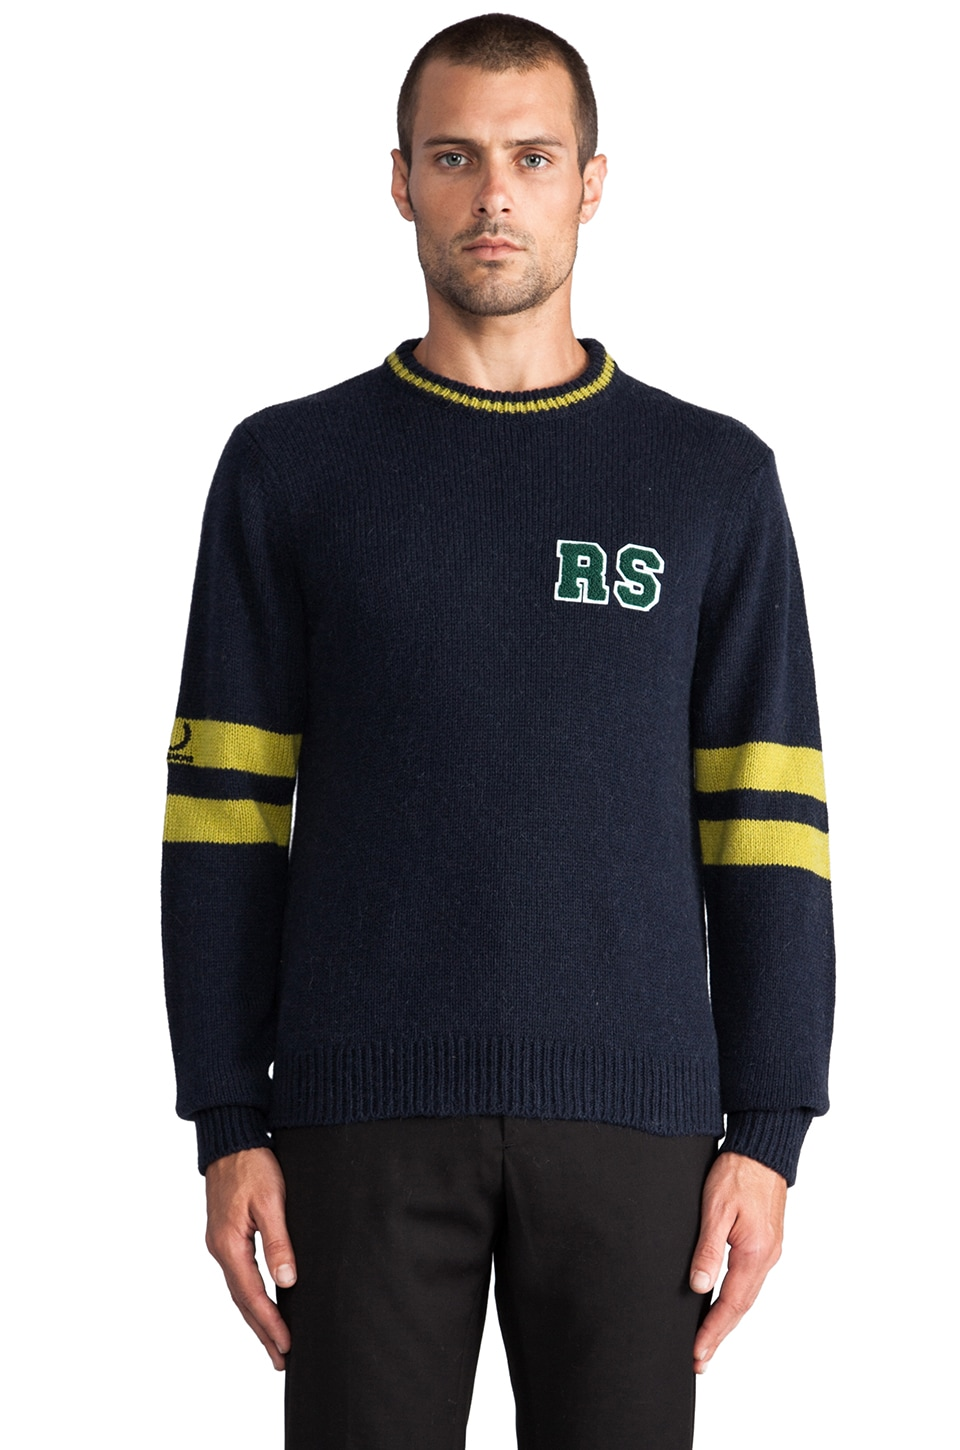 Fred Perry x Raf Simons Knitted Round Neck Sweater in Navy